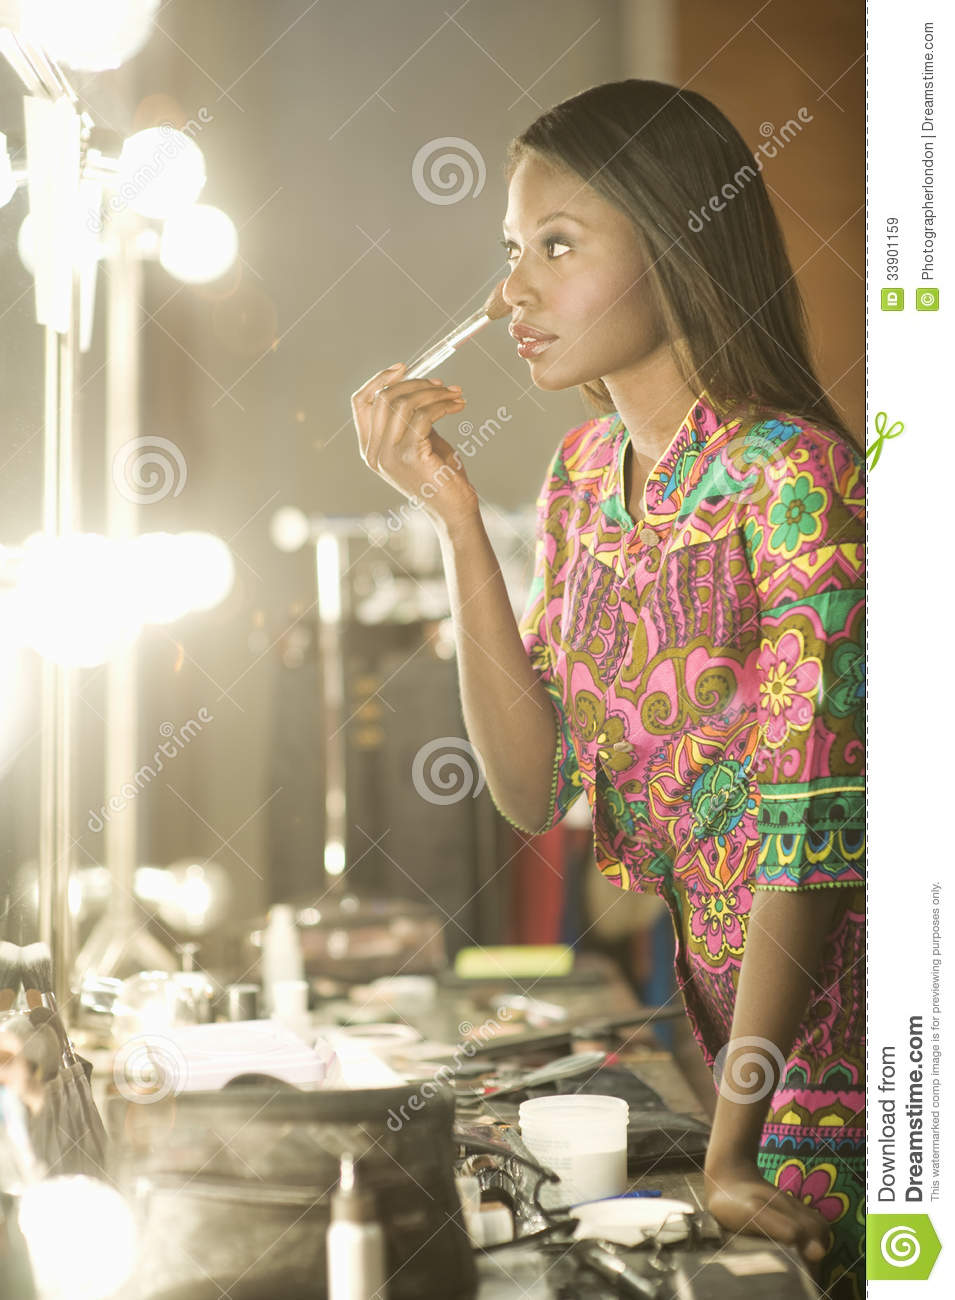 Model Applying Makeup In Dressing Room Royalty Free Stock